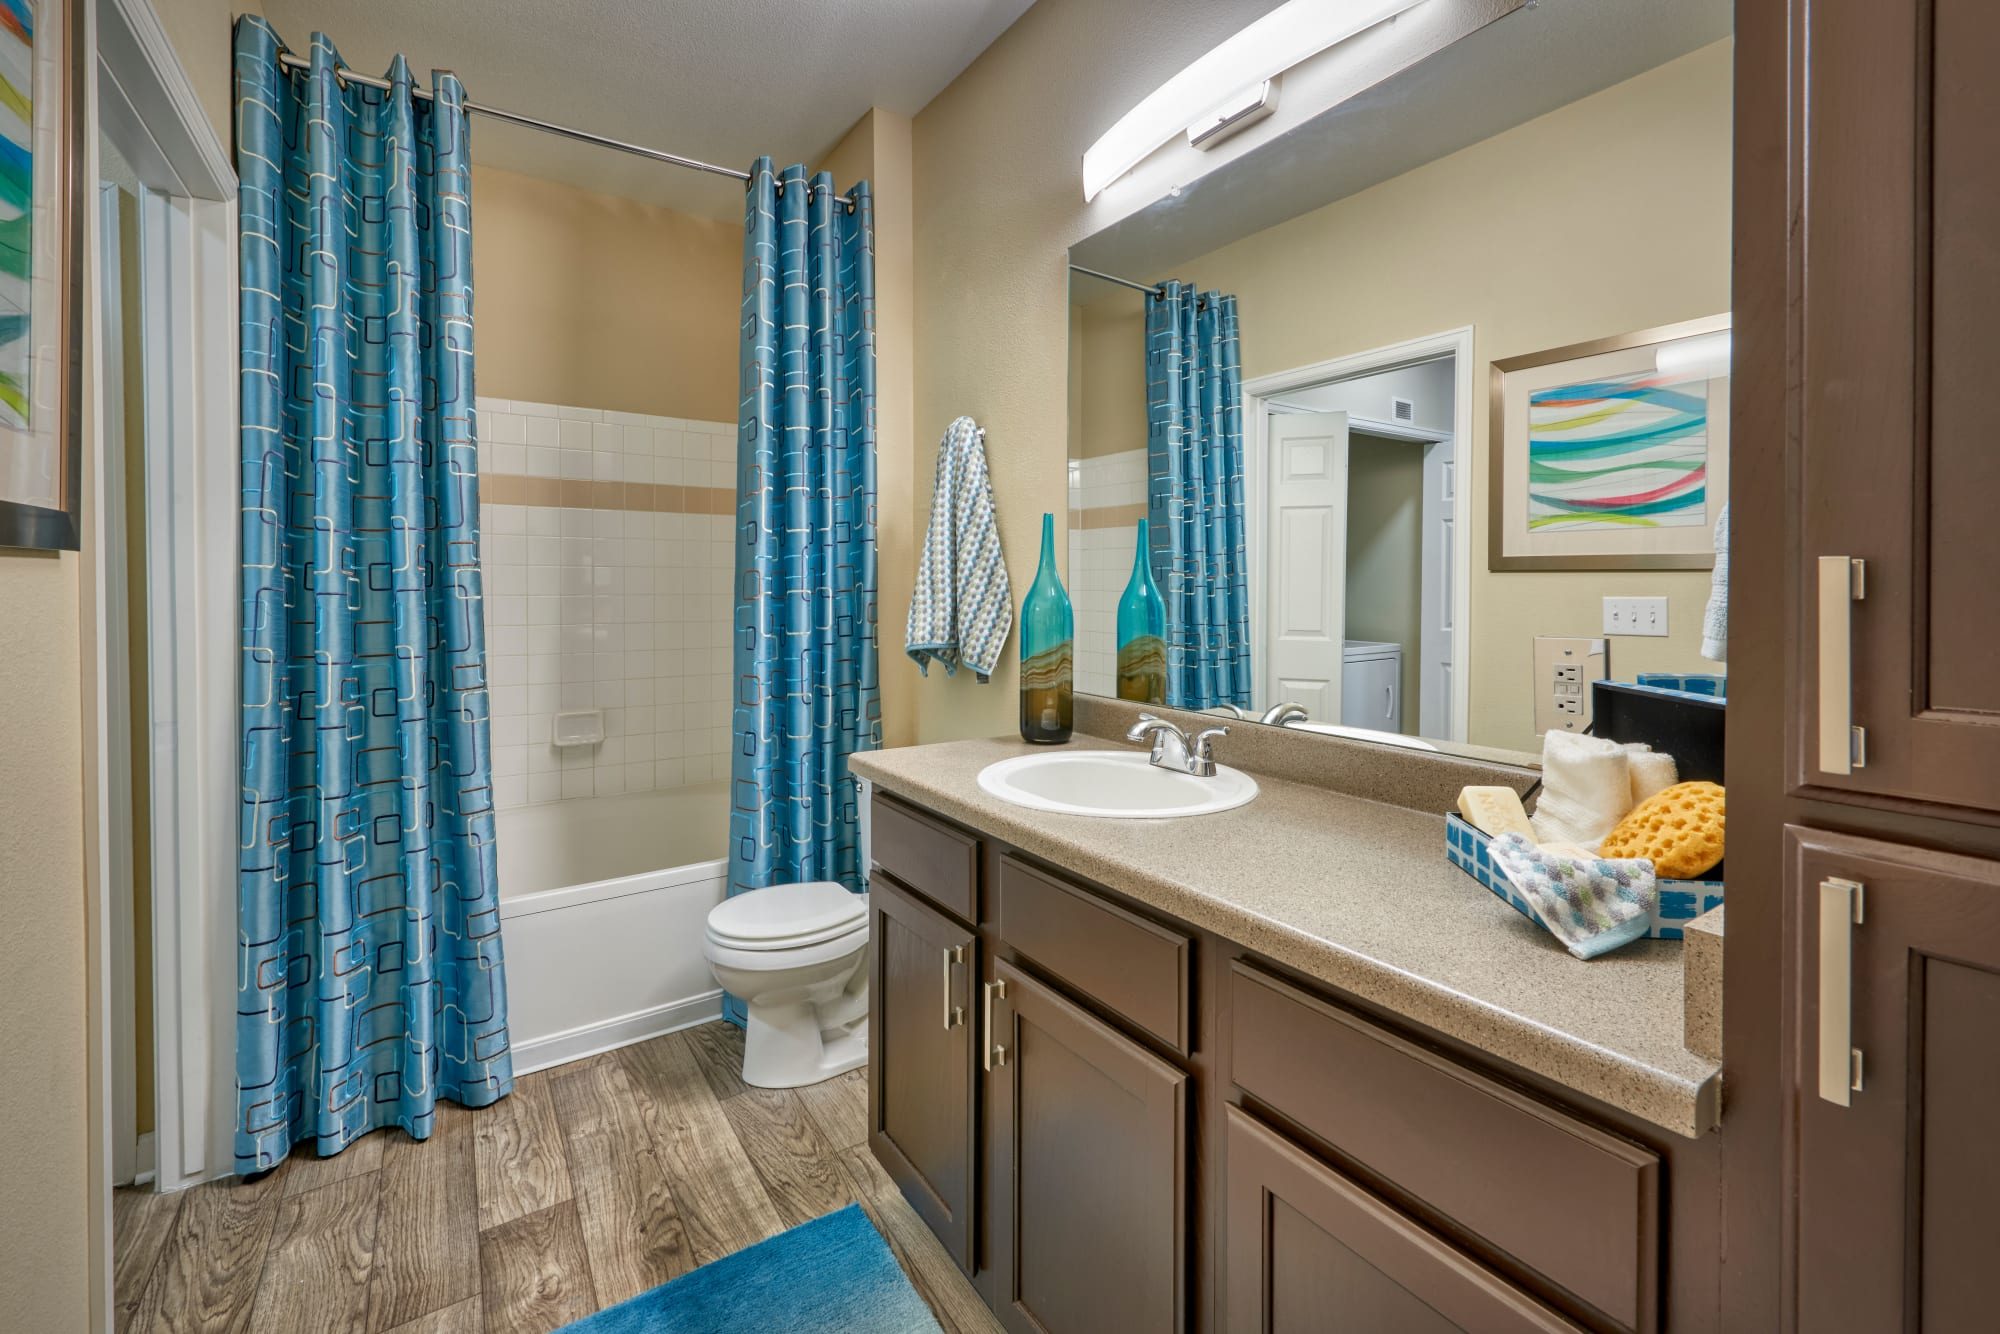 Bathroom with a tub at Skyecrest Apartments in Lakewood, Colorado